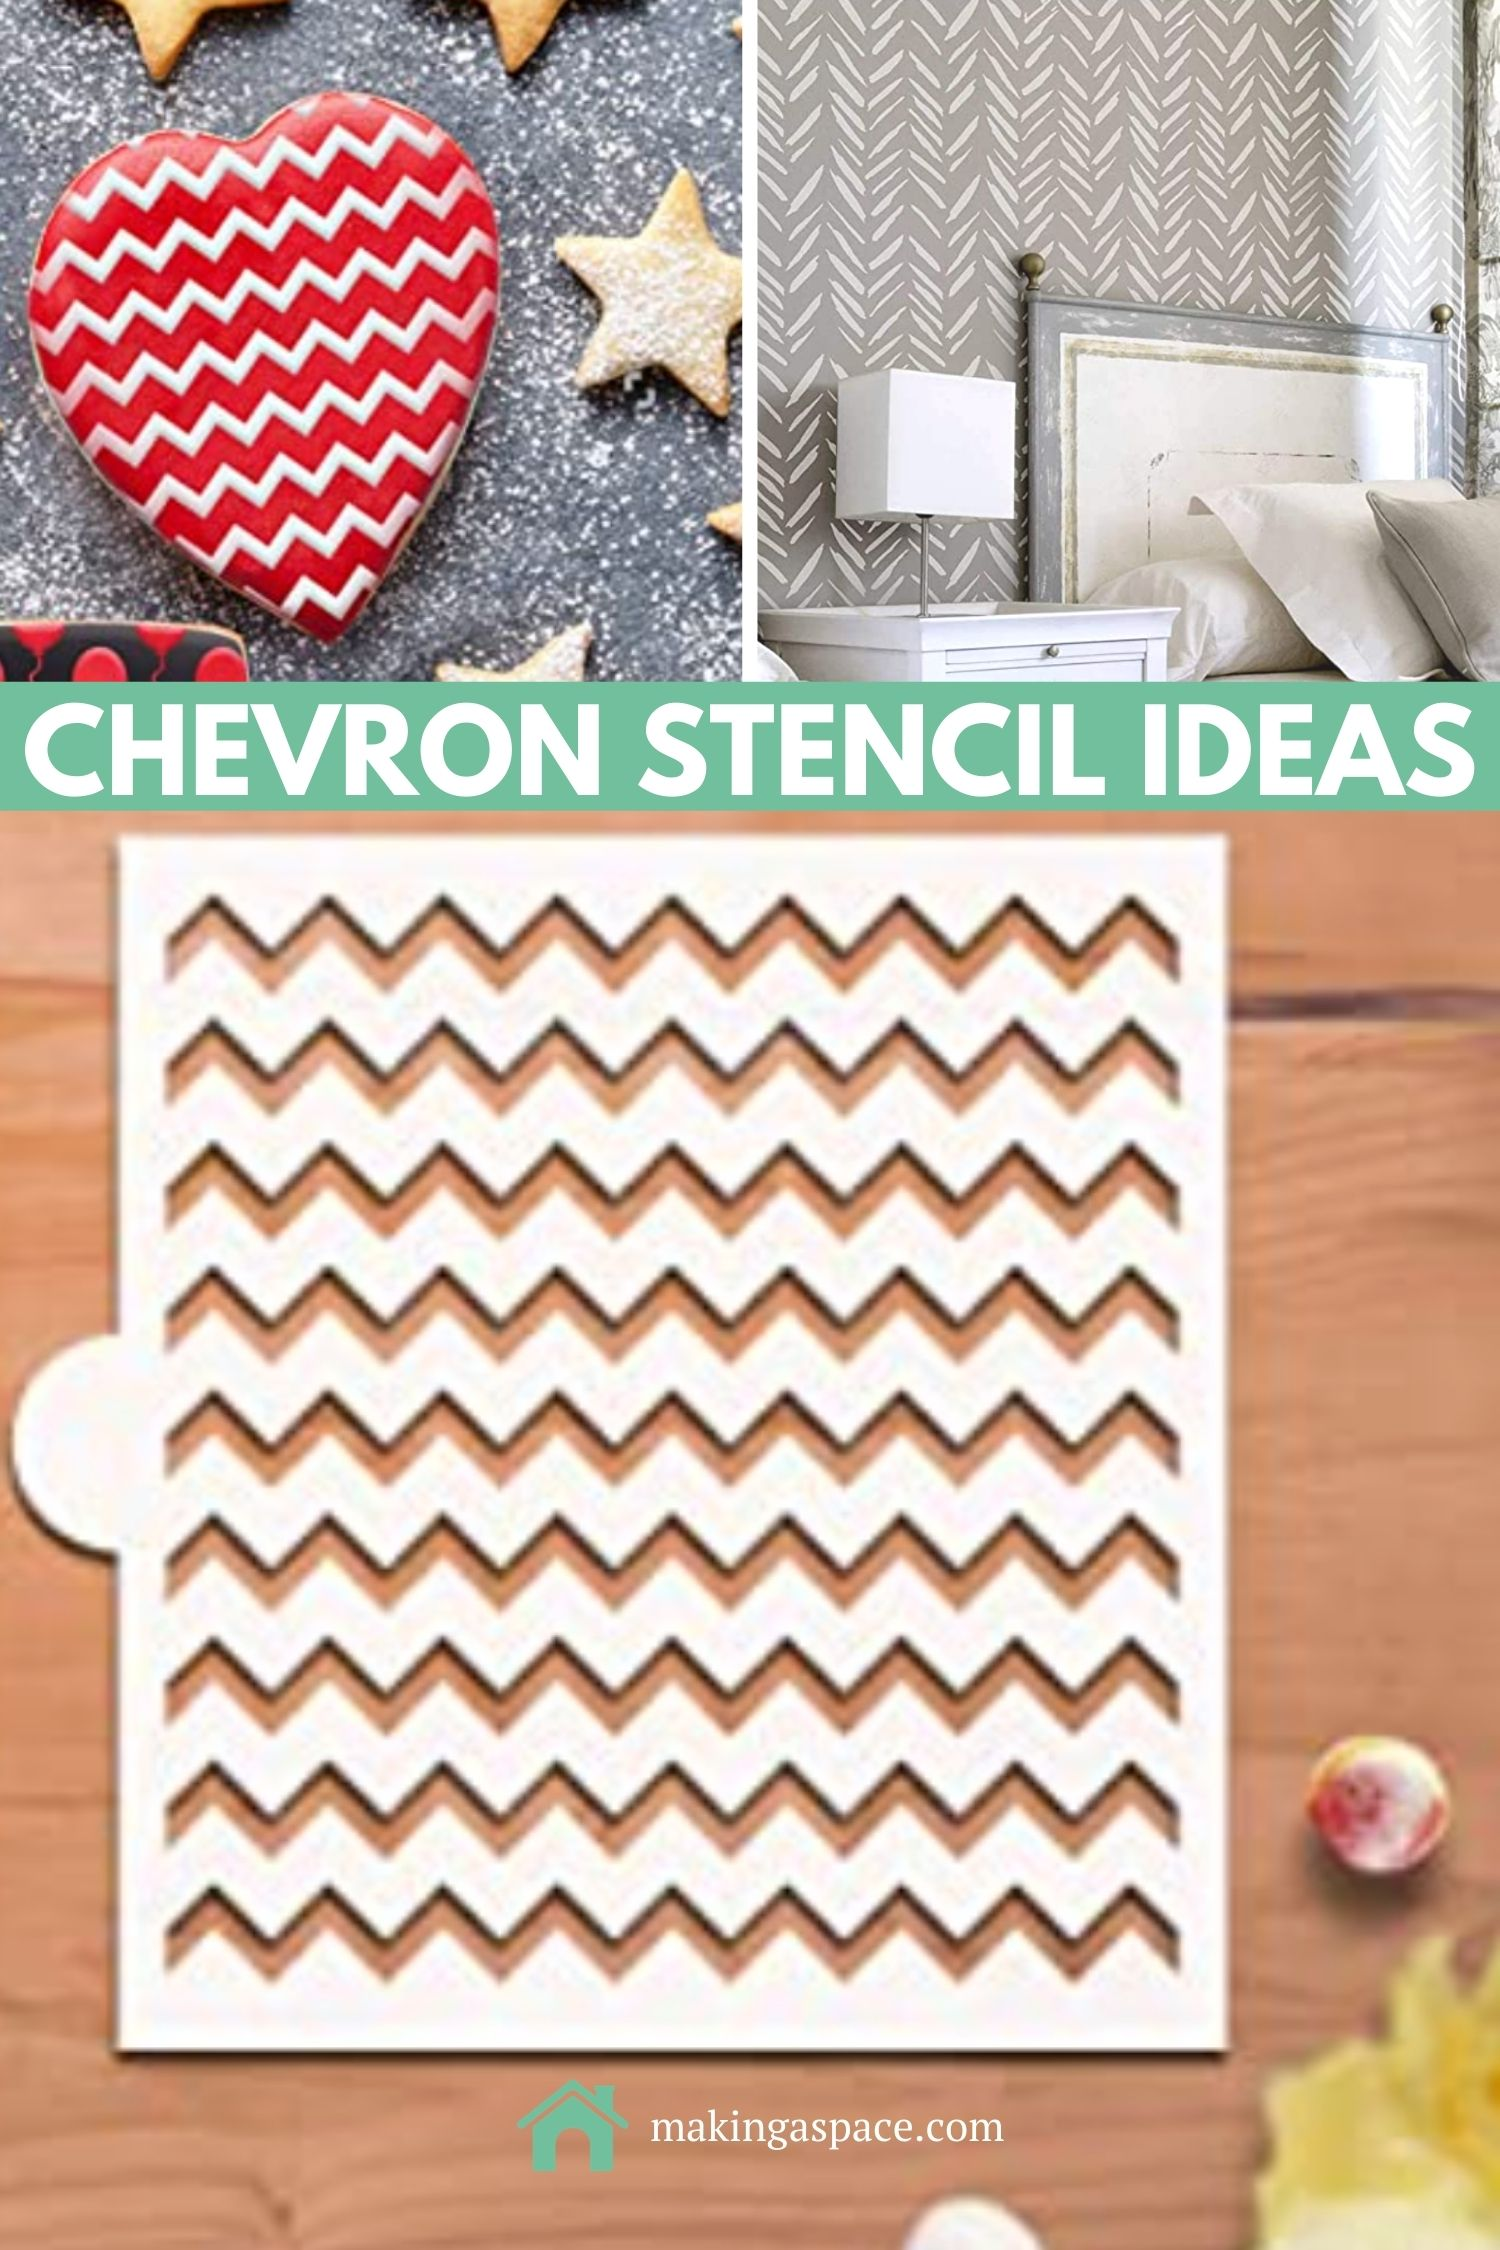 chevron stencil ideas for cookies, wall, and floor